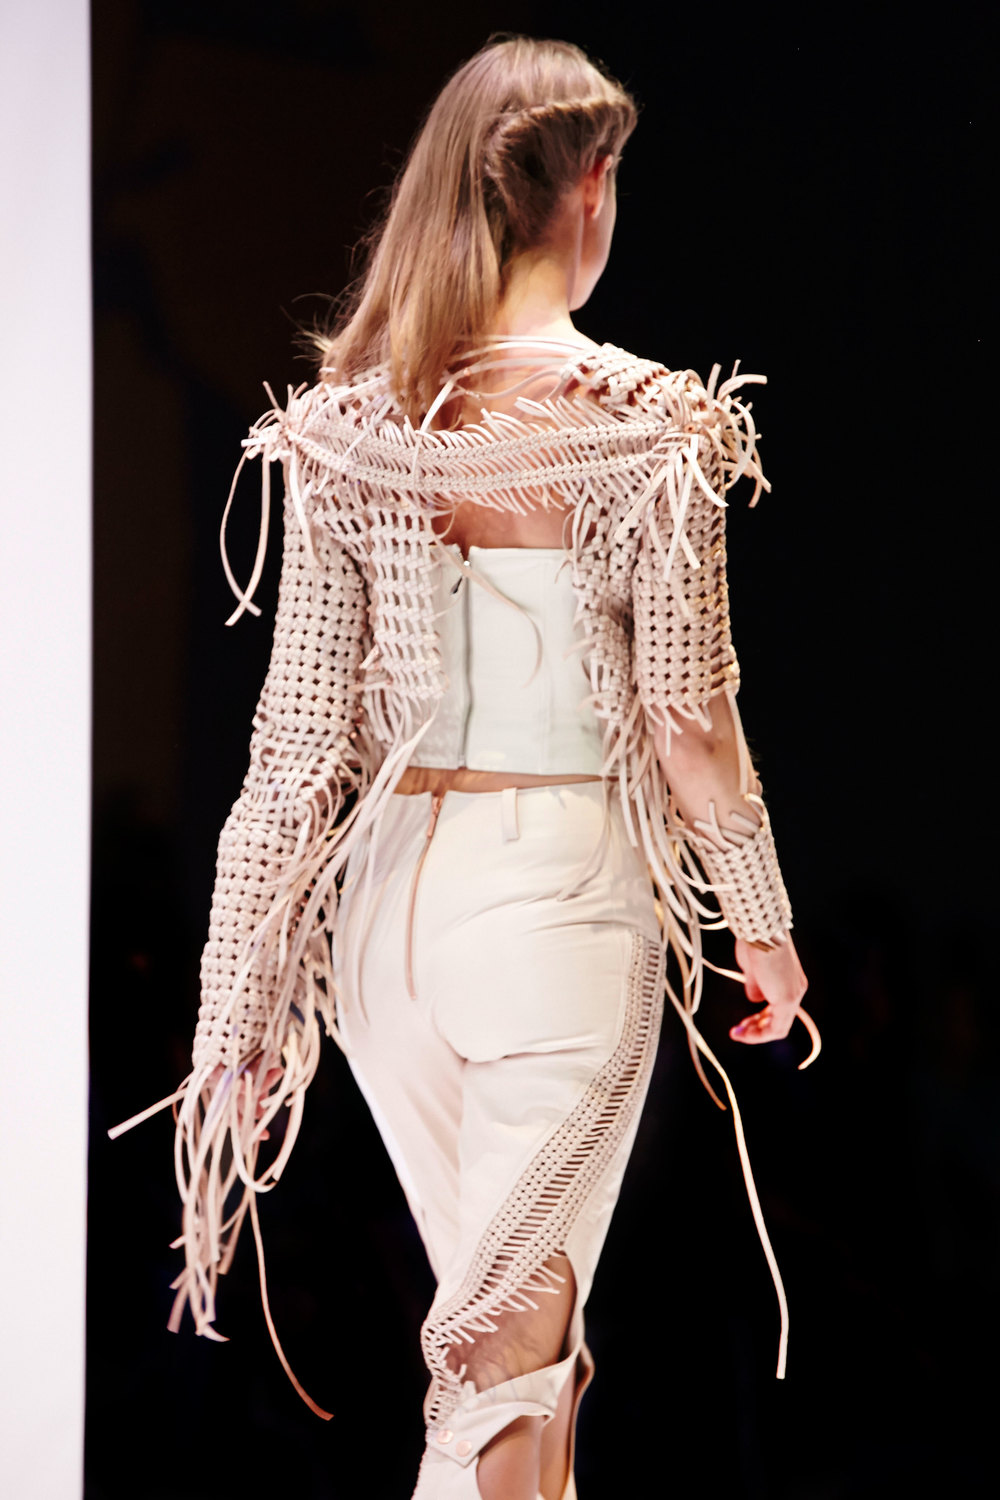 UTS-Fashion-Show-2014-Boris-Bresil-12.jpg